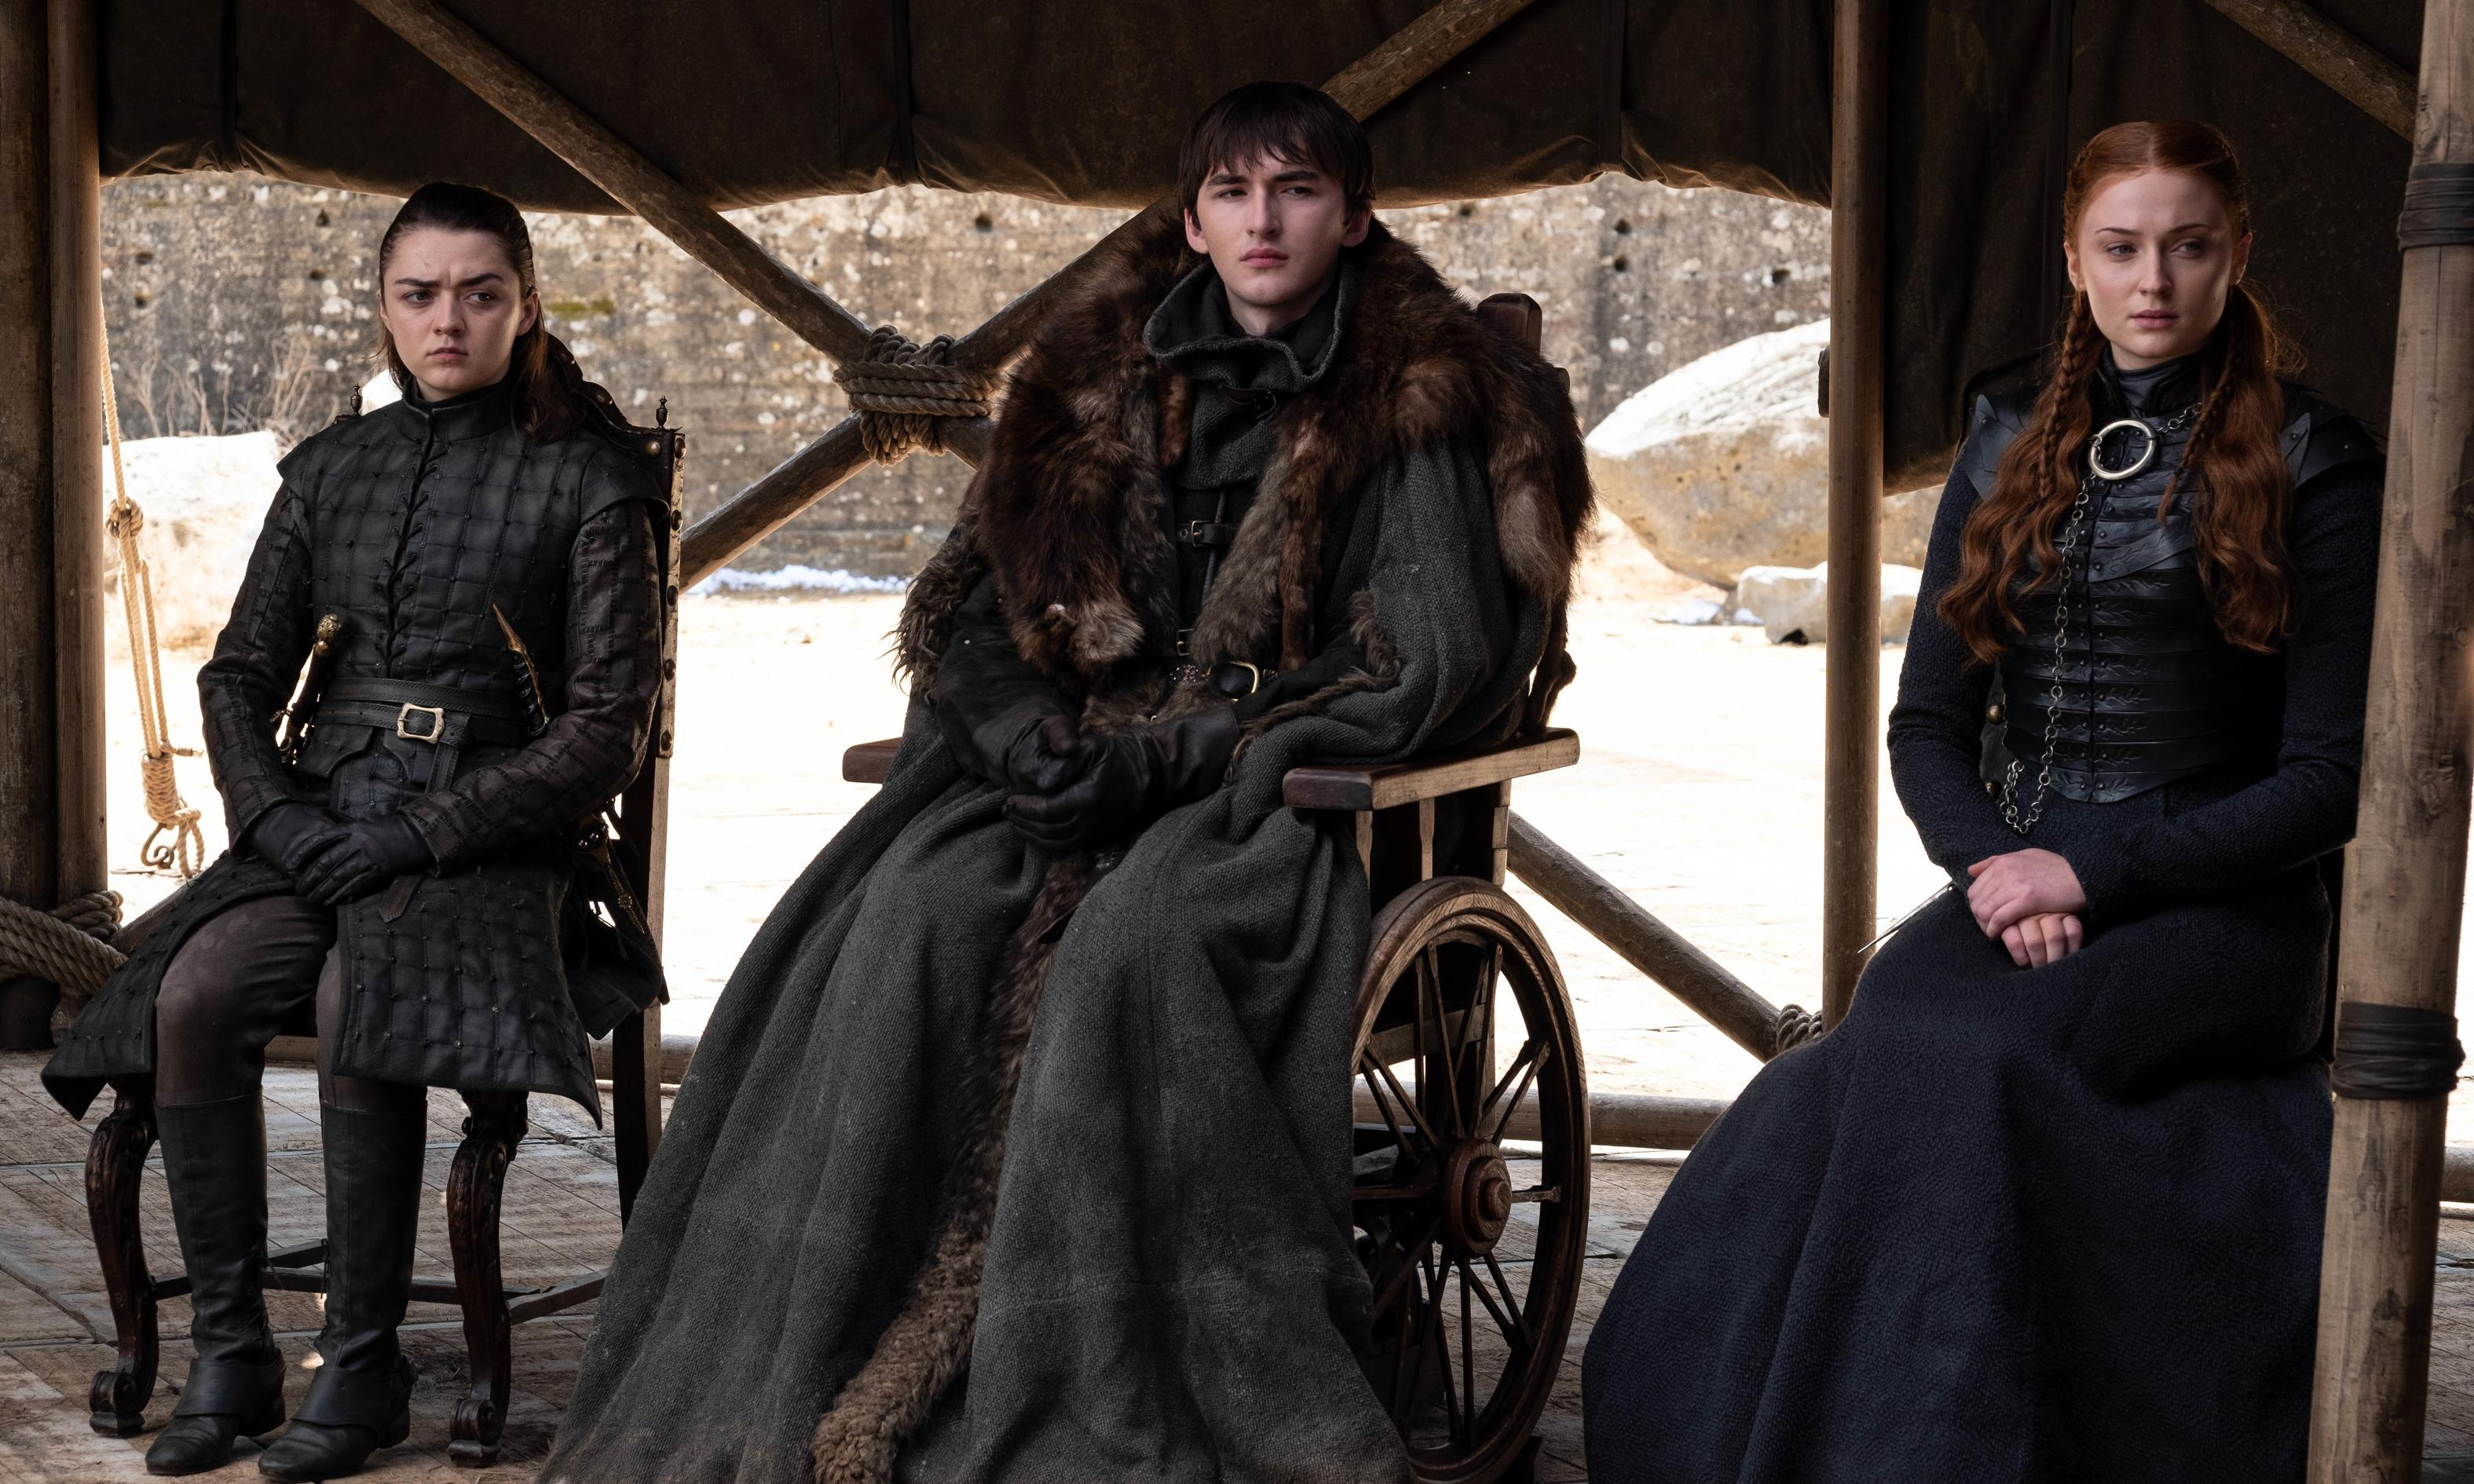 'I feel empty now': you review the Game of Thrones finale